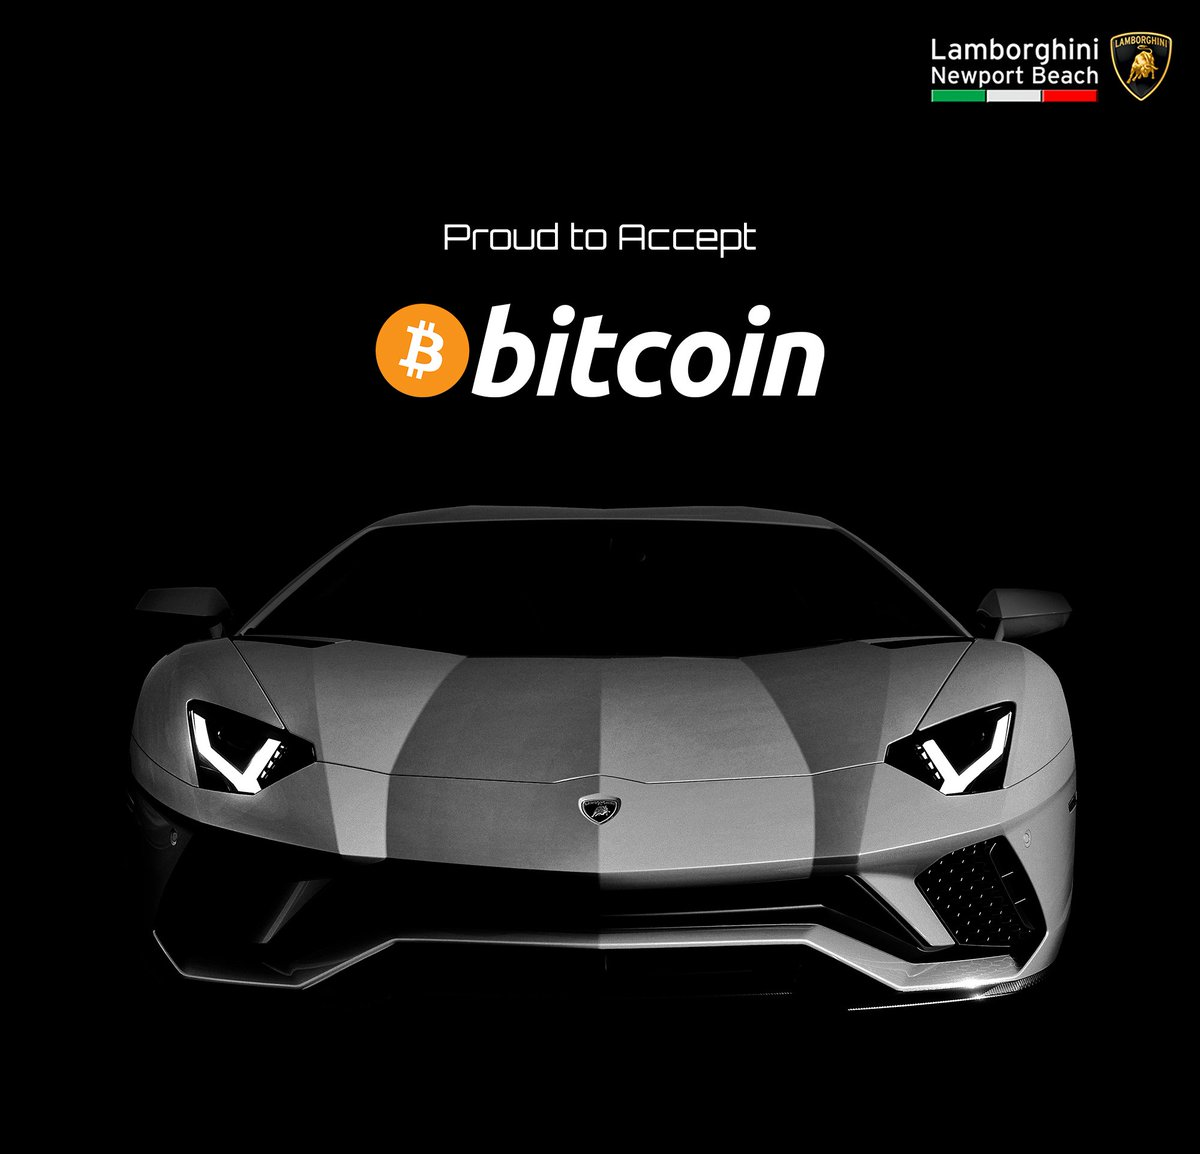 Lambo Newport Beach On Twitter We Re Proud To Accept Bitcoin Via